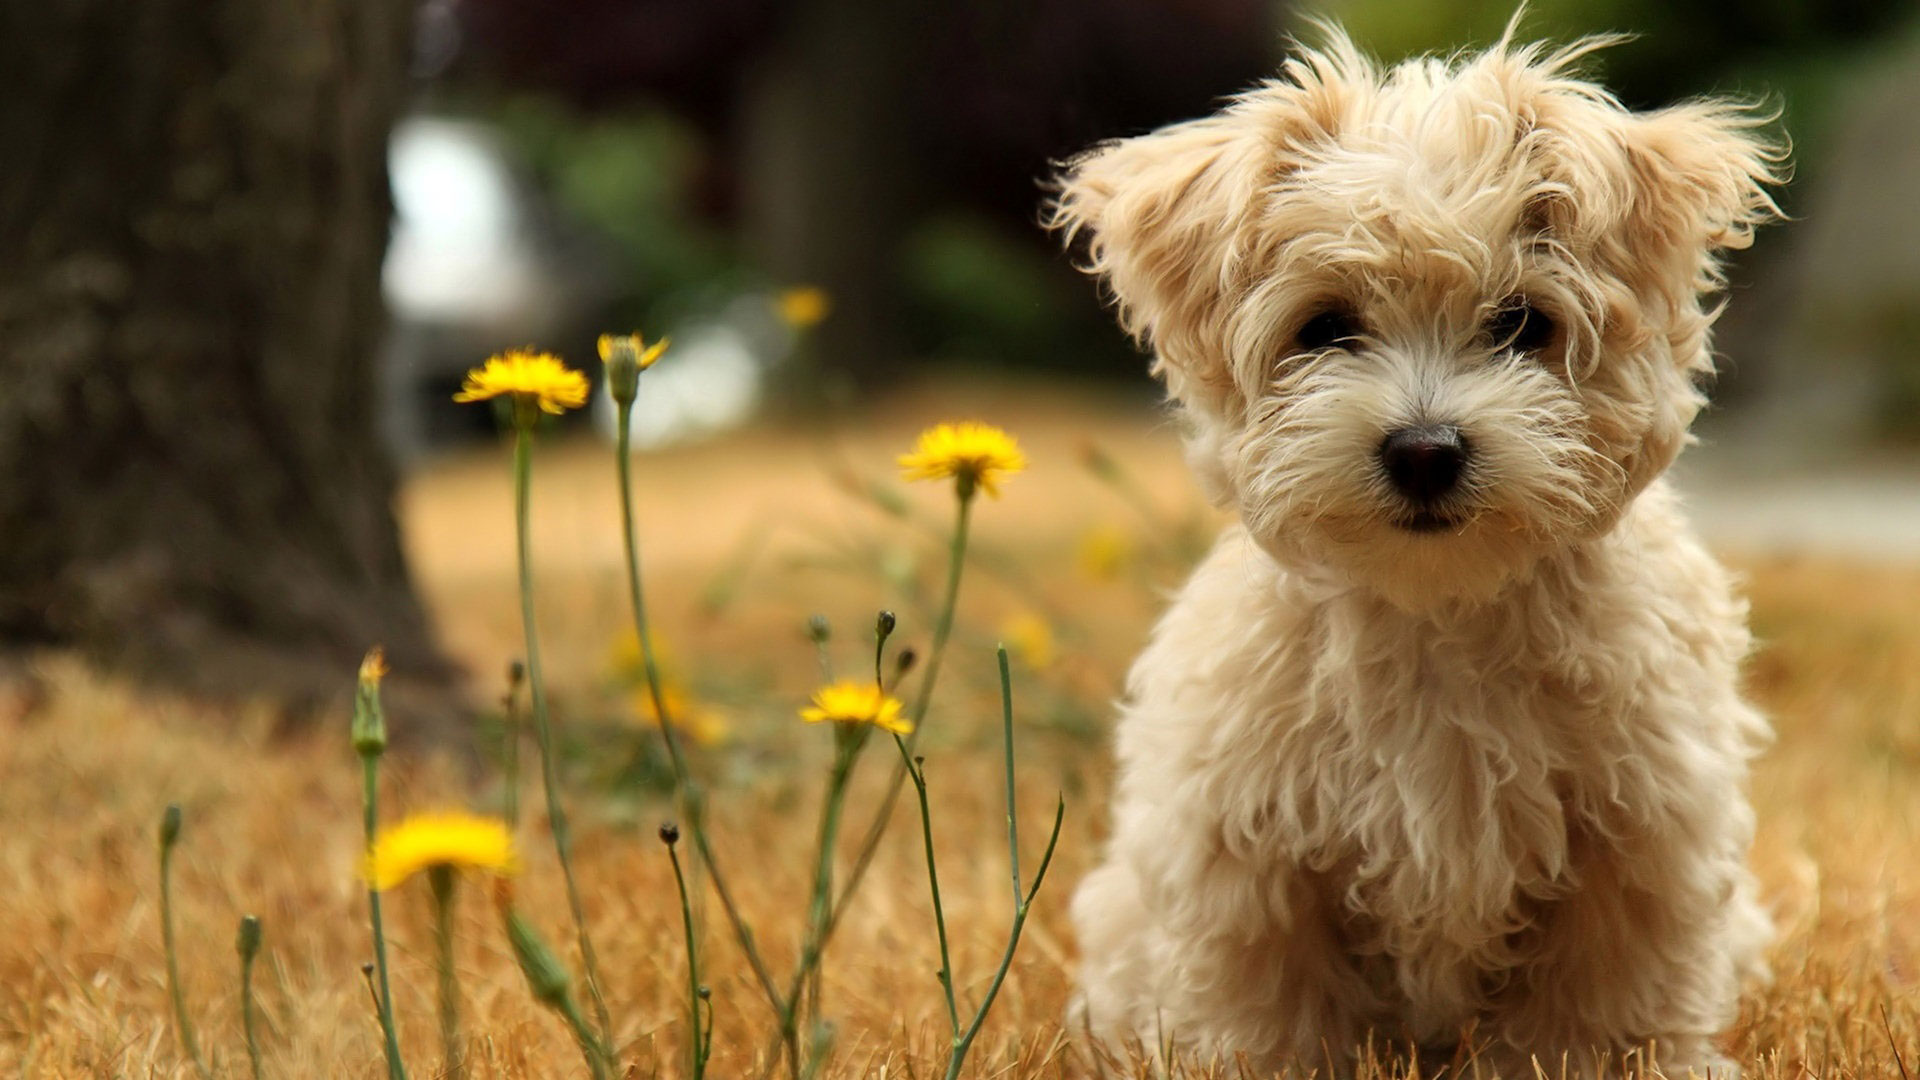 Cute Little Dog 1920x1080 16 9 Back To Wallpaper Back Home